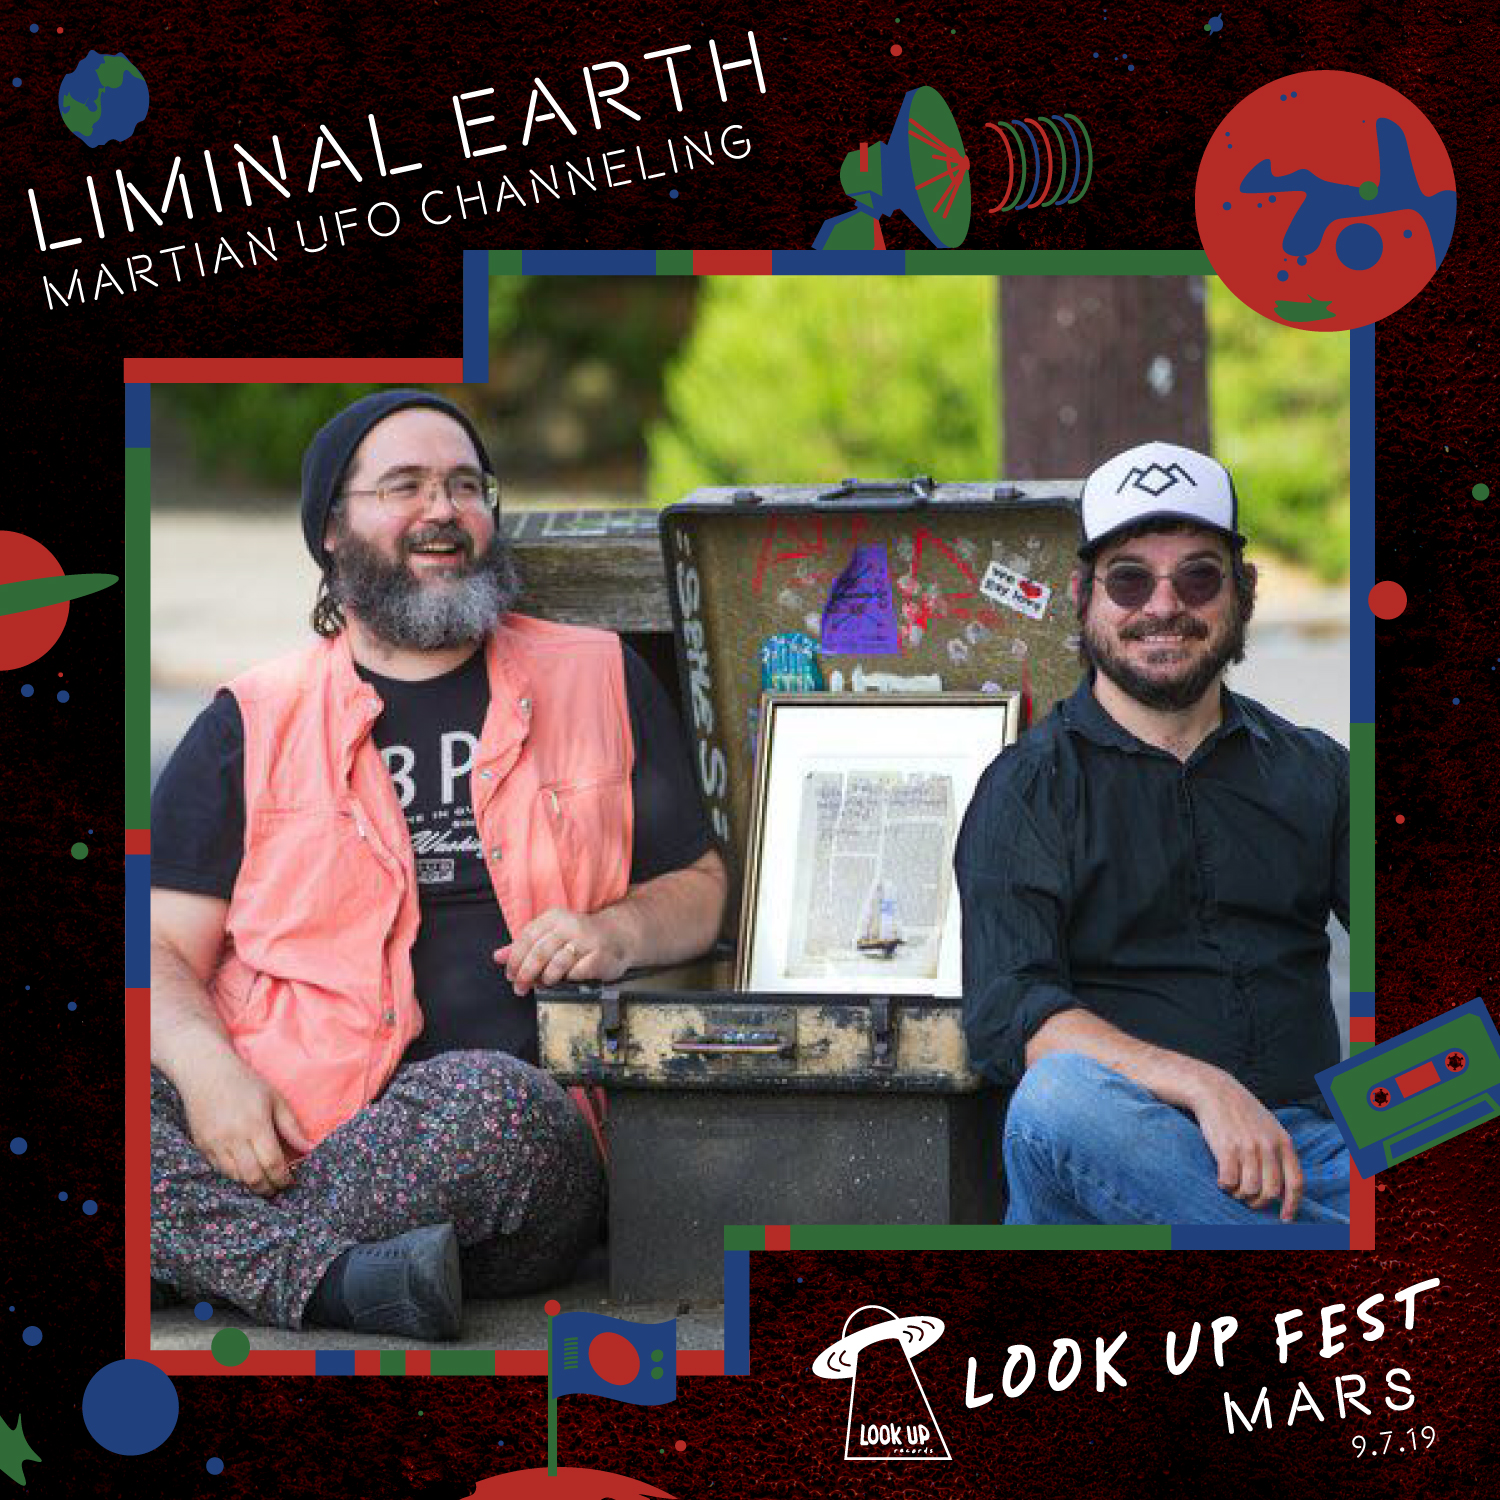 LIMINAL EARTH - A map of the strange, wonderful, unusual, and unexpected. Liminal.Earth (originally Liminal Seattle) is a curated map maintained by the Society for Liminal Cartography. At Look Up Fest: Mars, Liminal Earth will summon a Martian UFO using a ritual magic, Powerpoint presentation, and audience participation with interactive soundscapes and weird HAM radio props. This will be their 3rd Look Up Fest!